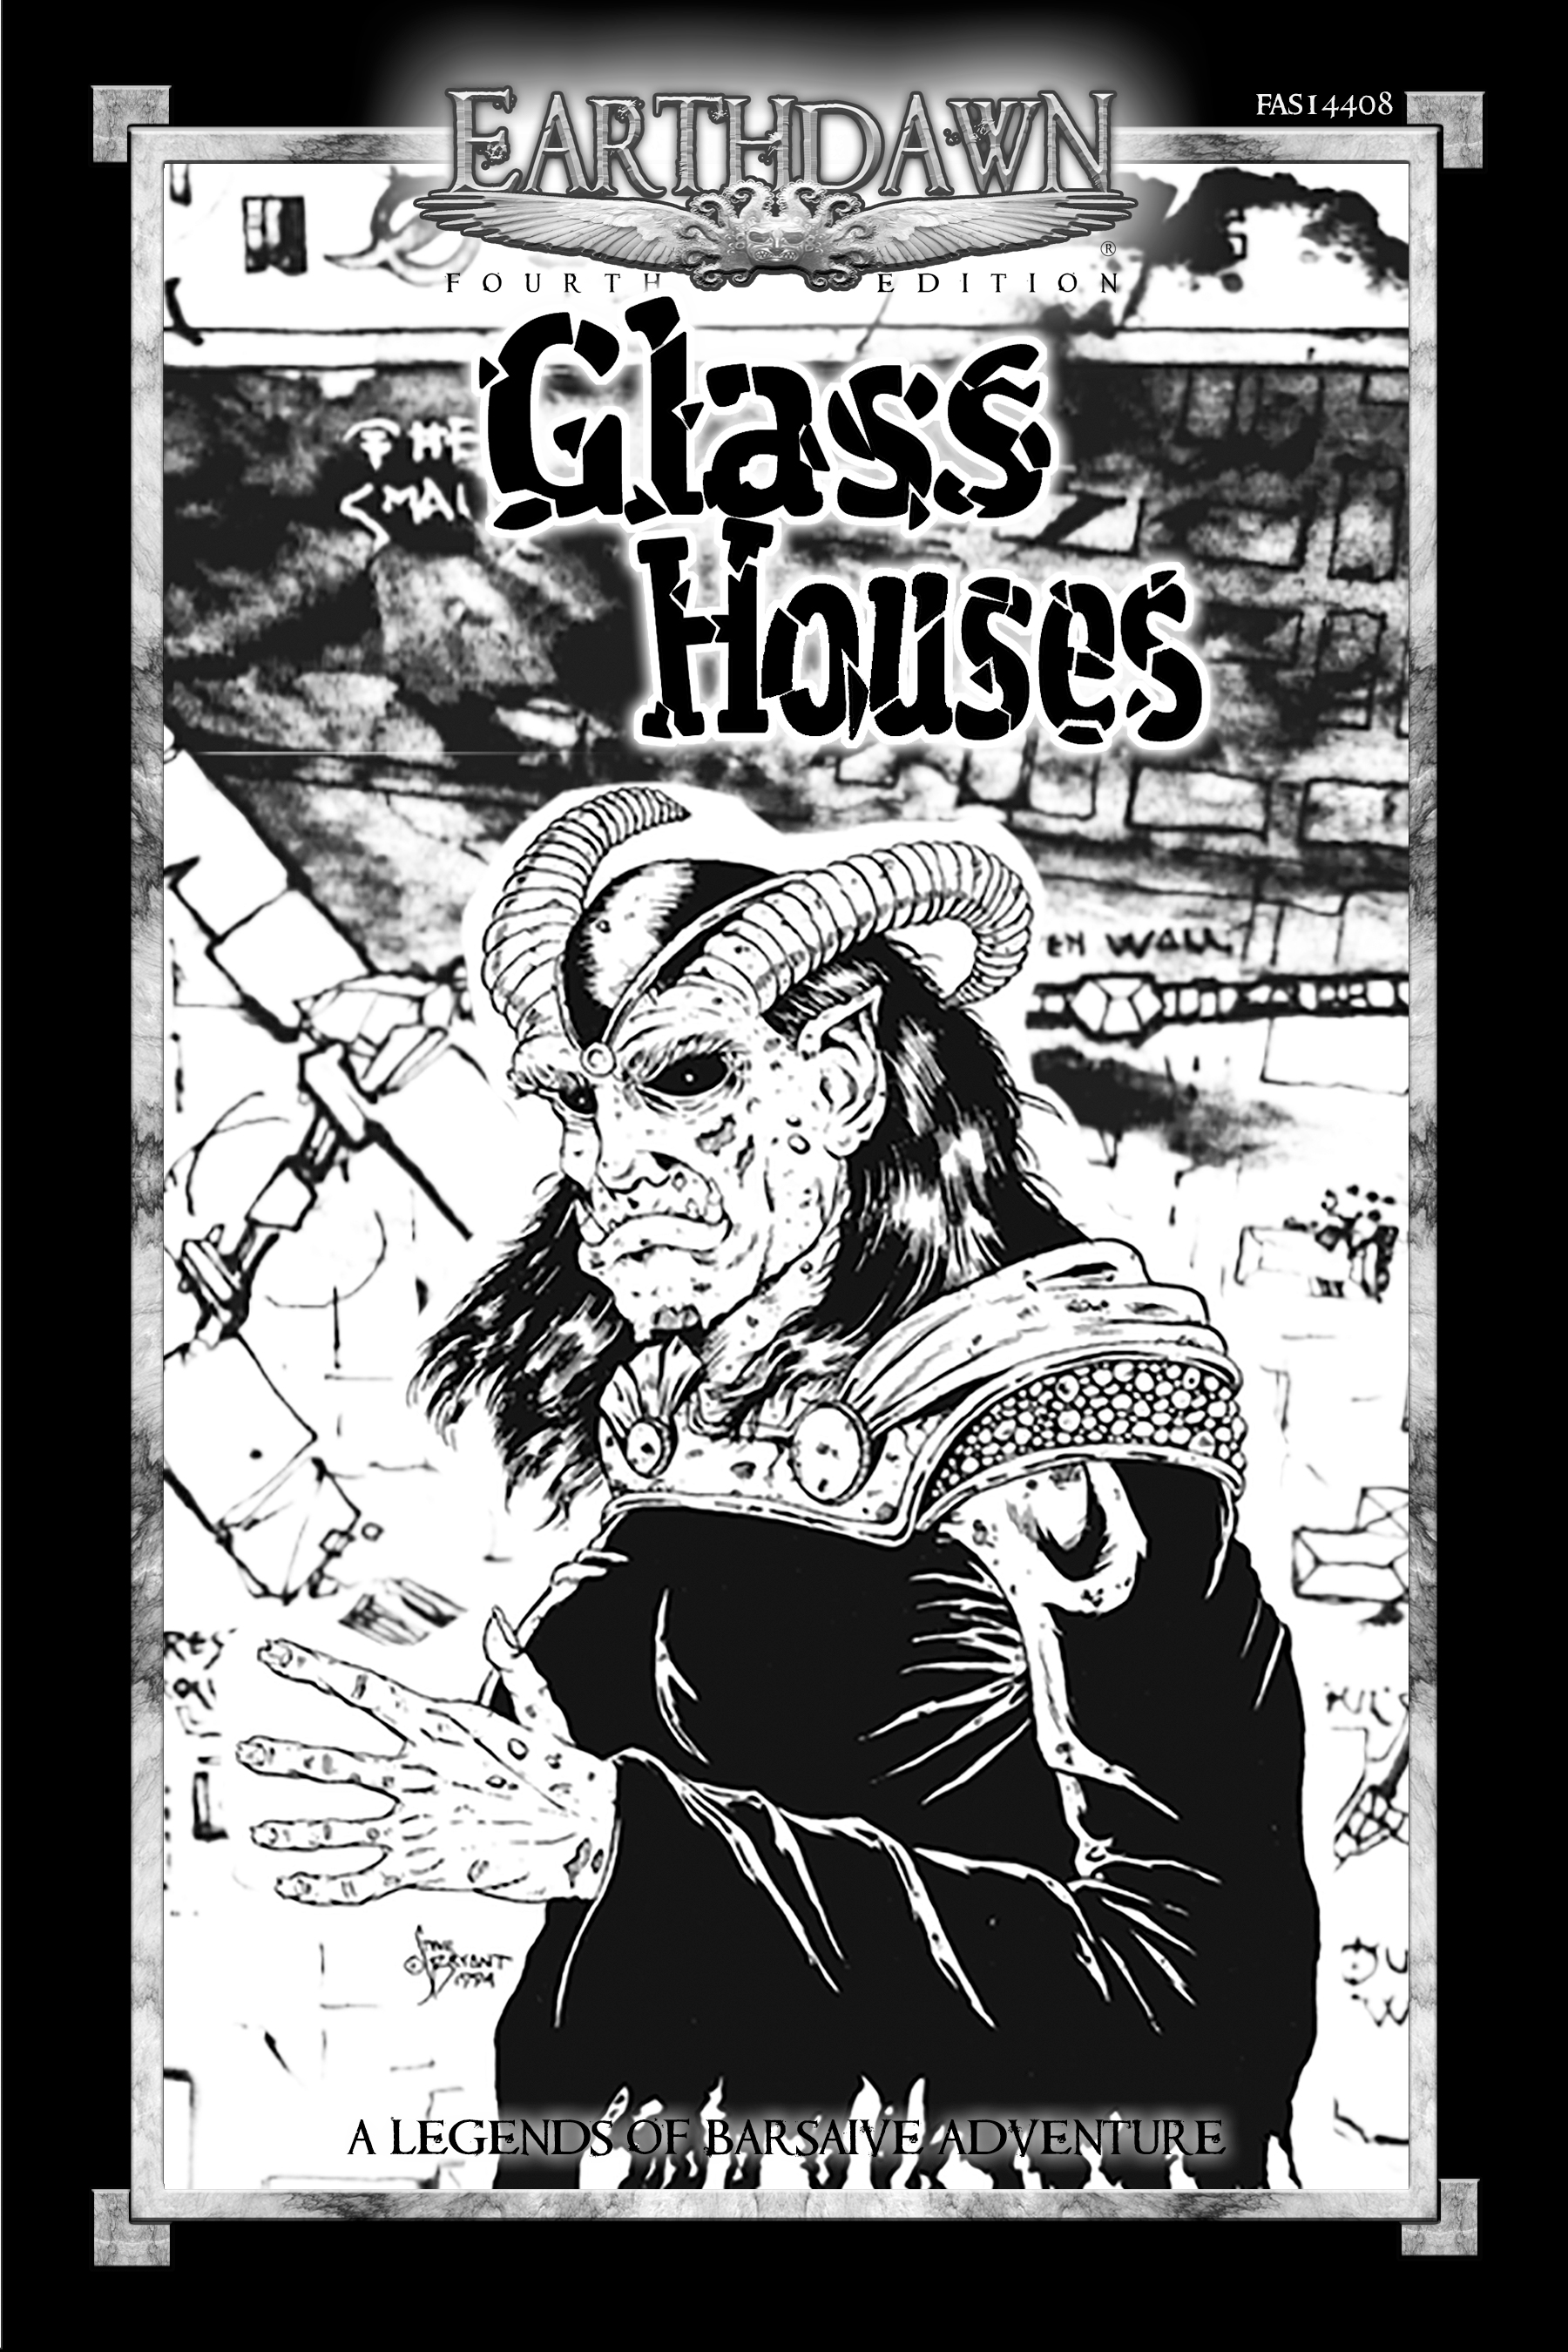 Legends of Barsaive 06: Glass Houses [PDF + print]